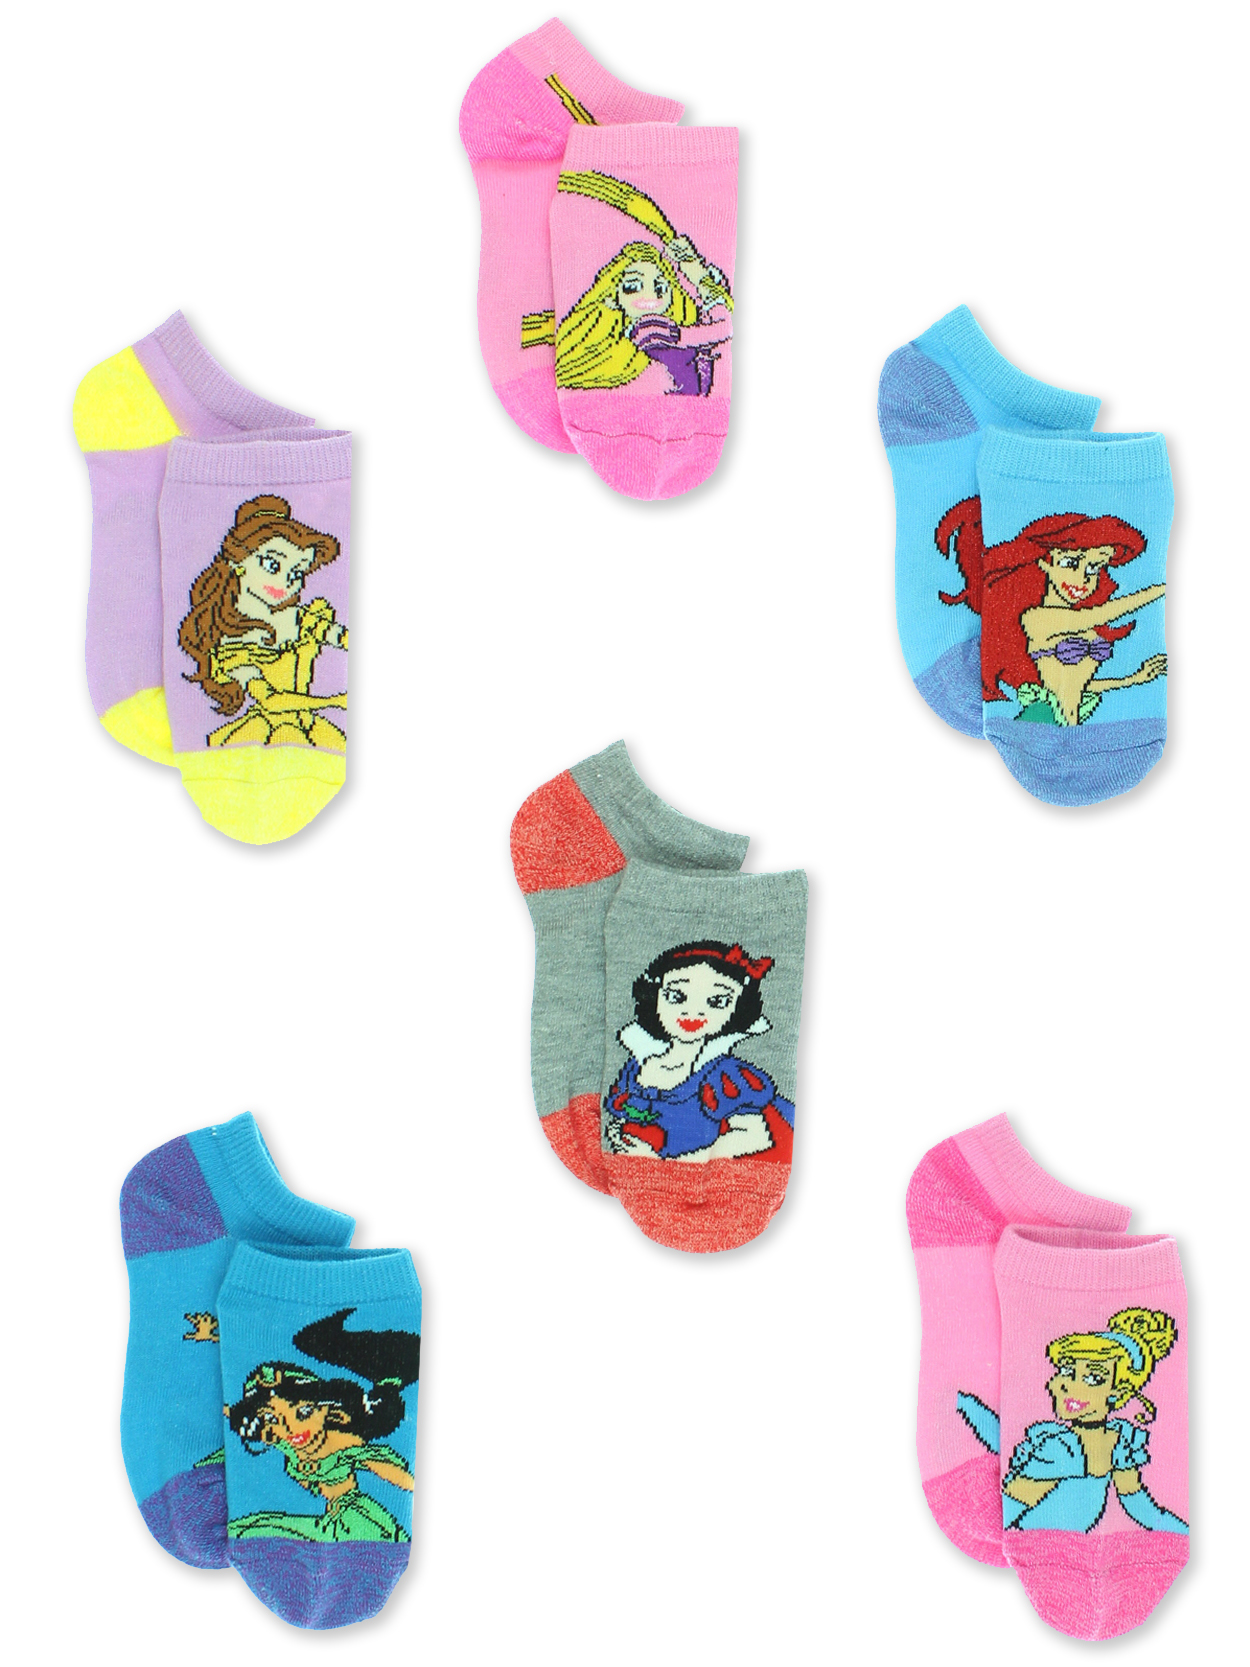 Disney Princess Girls Toddler 6 Pack No Show Socks Set DP237GNS